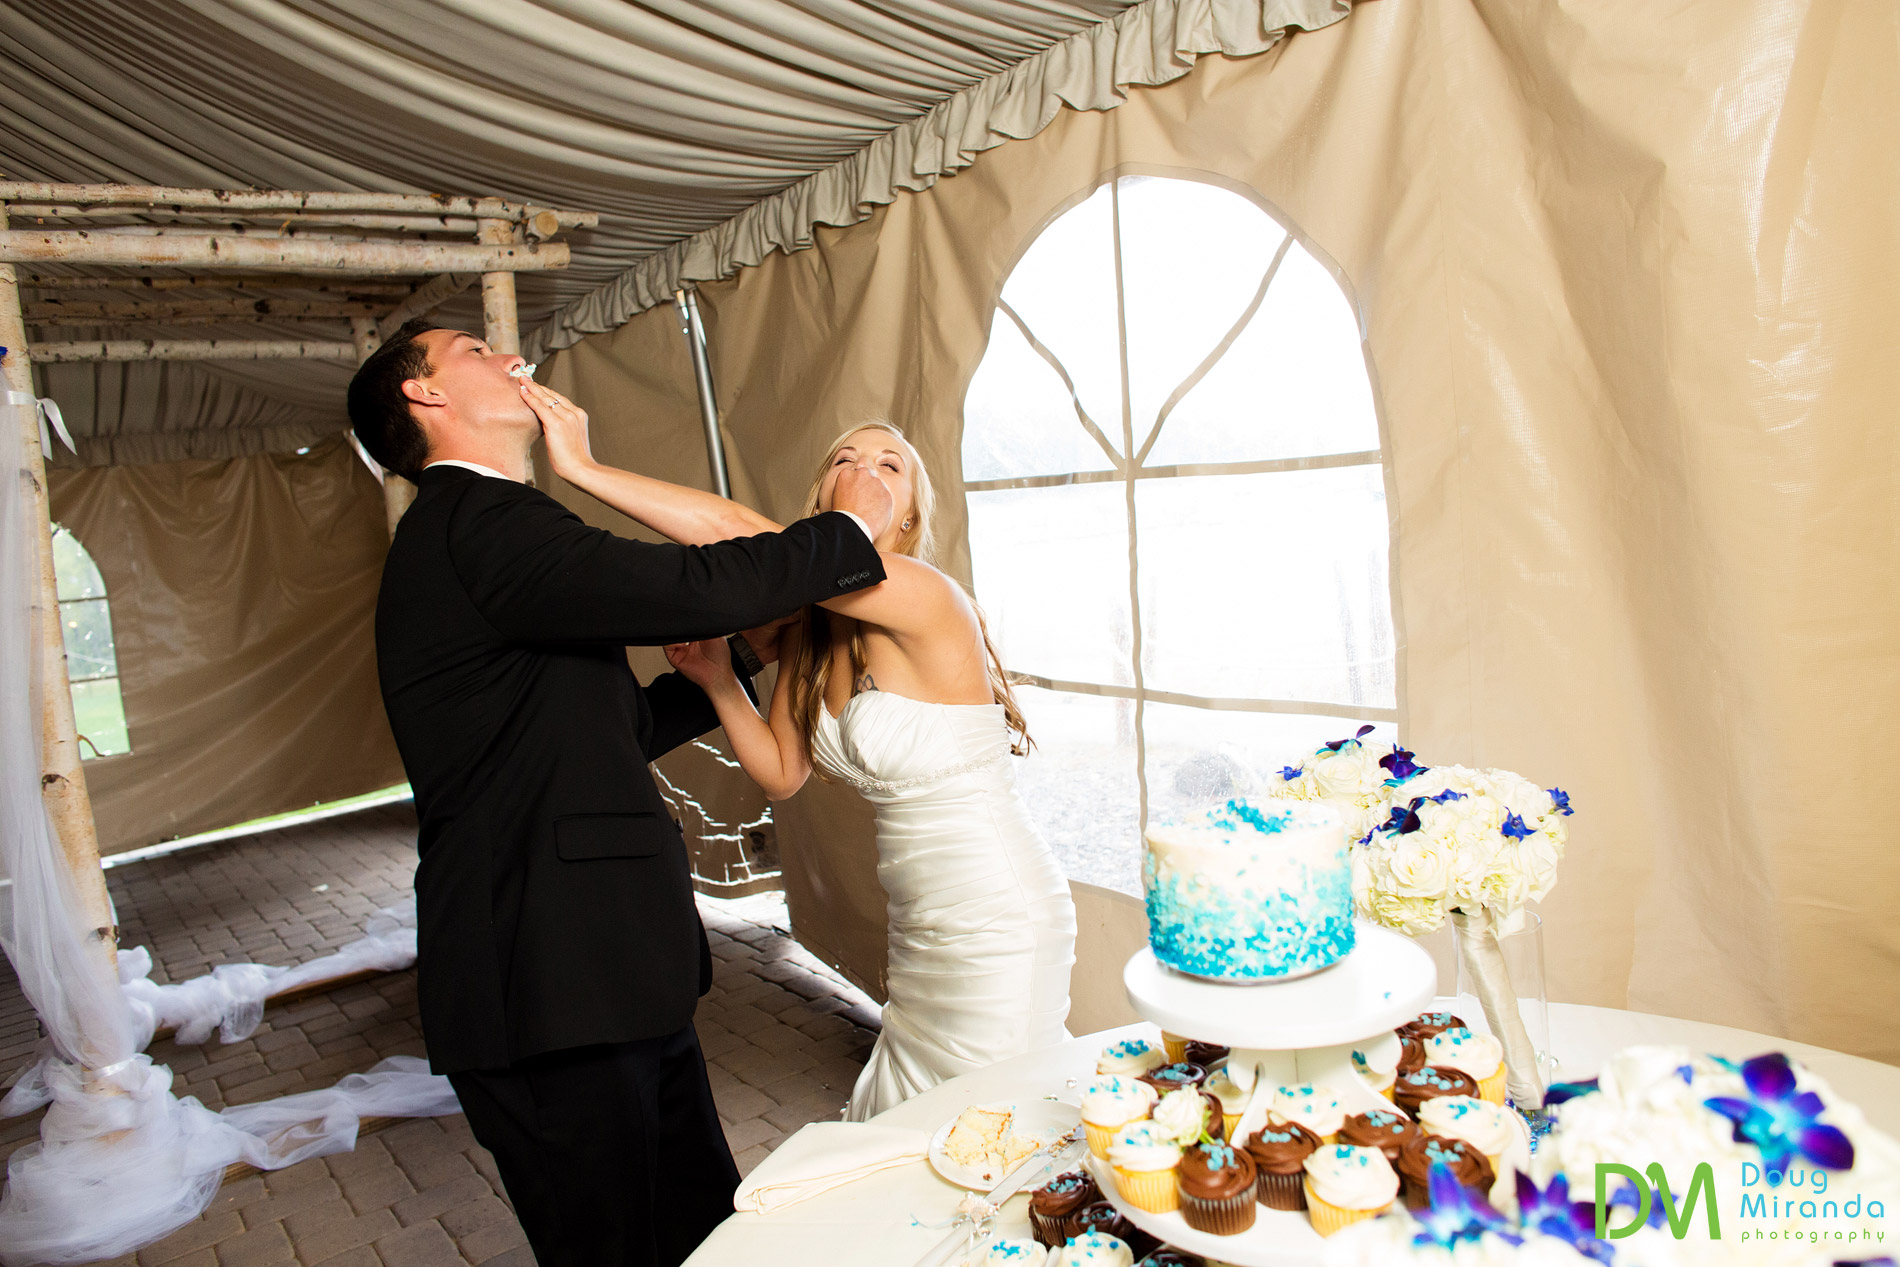 One, two, three lets smash the cake in each others face.